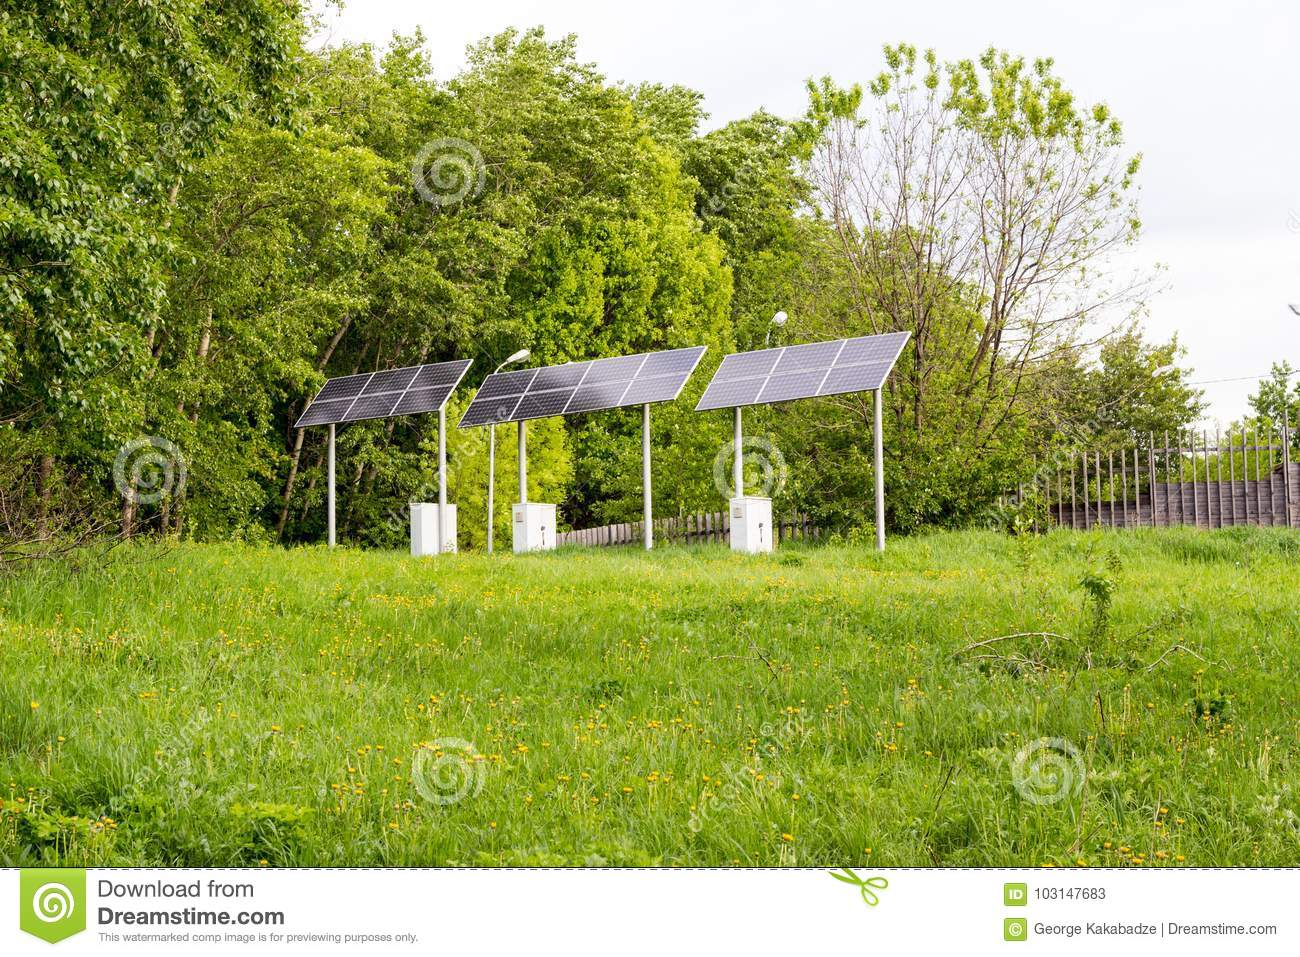 https www dreamstime com solar battery powers electric lamp park array track lighting image103147683